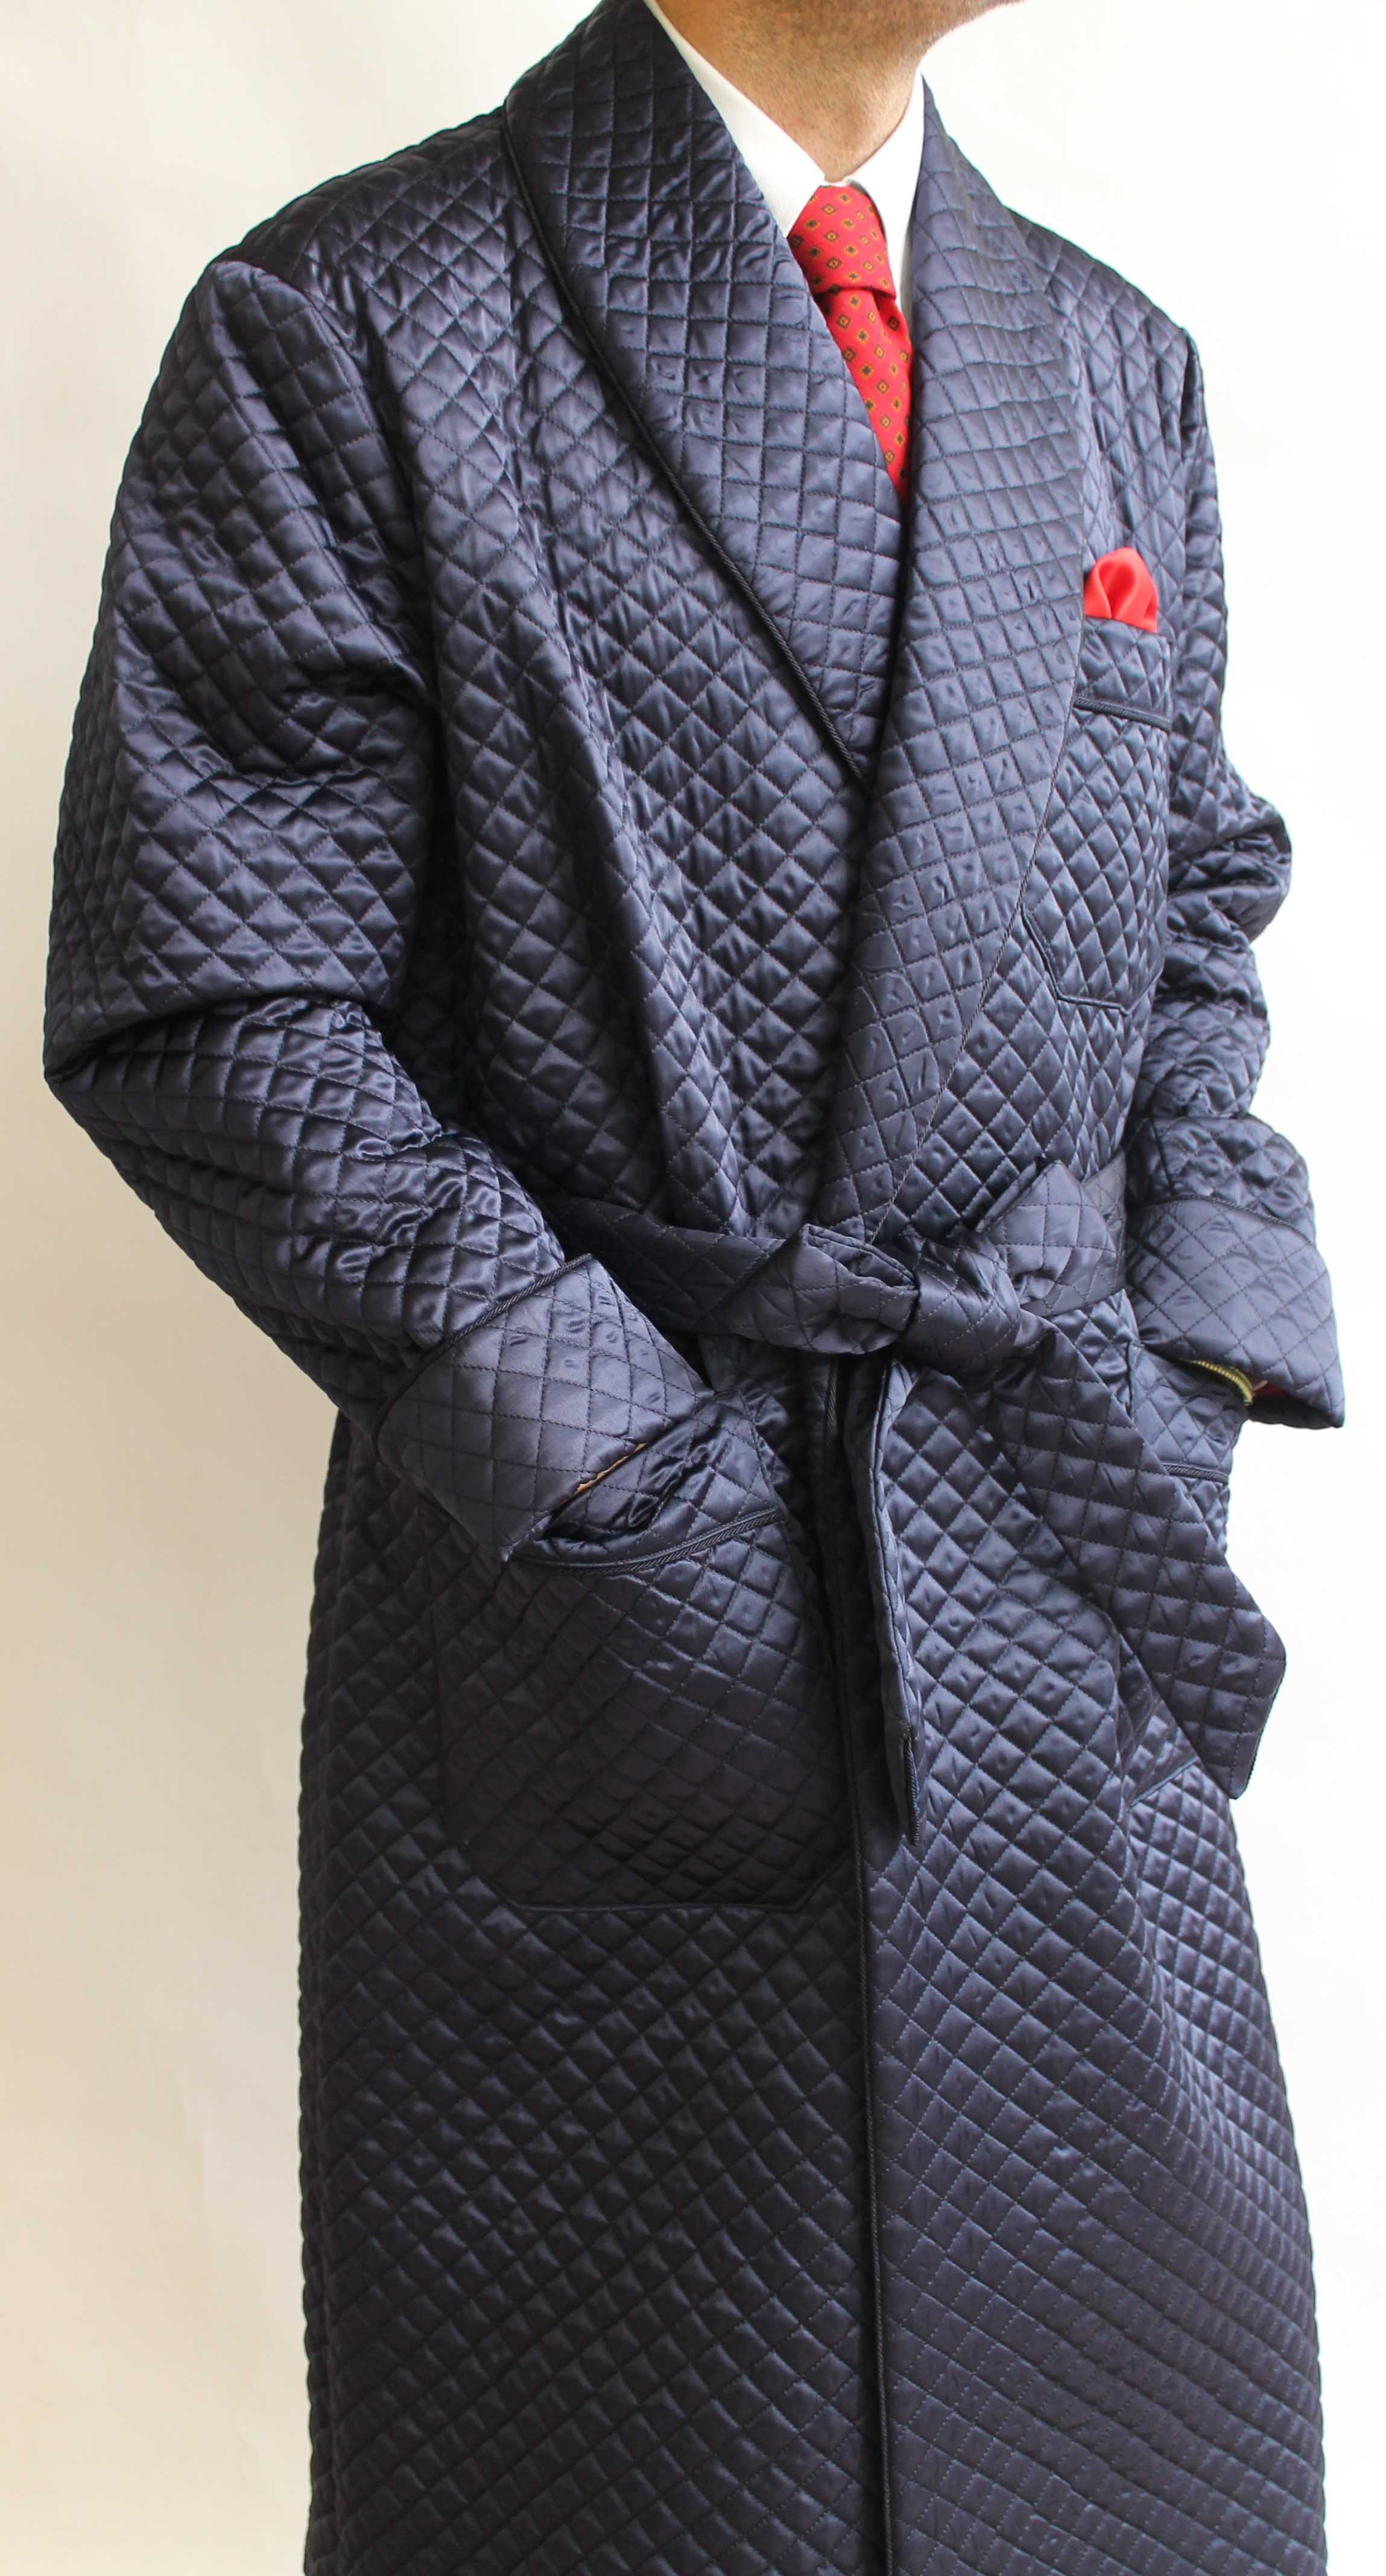 66a6697729 QUILTED BEMBERG CLASSIC DRESSING GOWN FOR MAN FULL BEMBERG LINING WITH  PIPING.